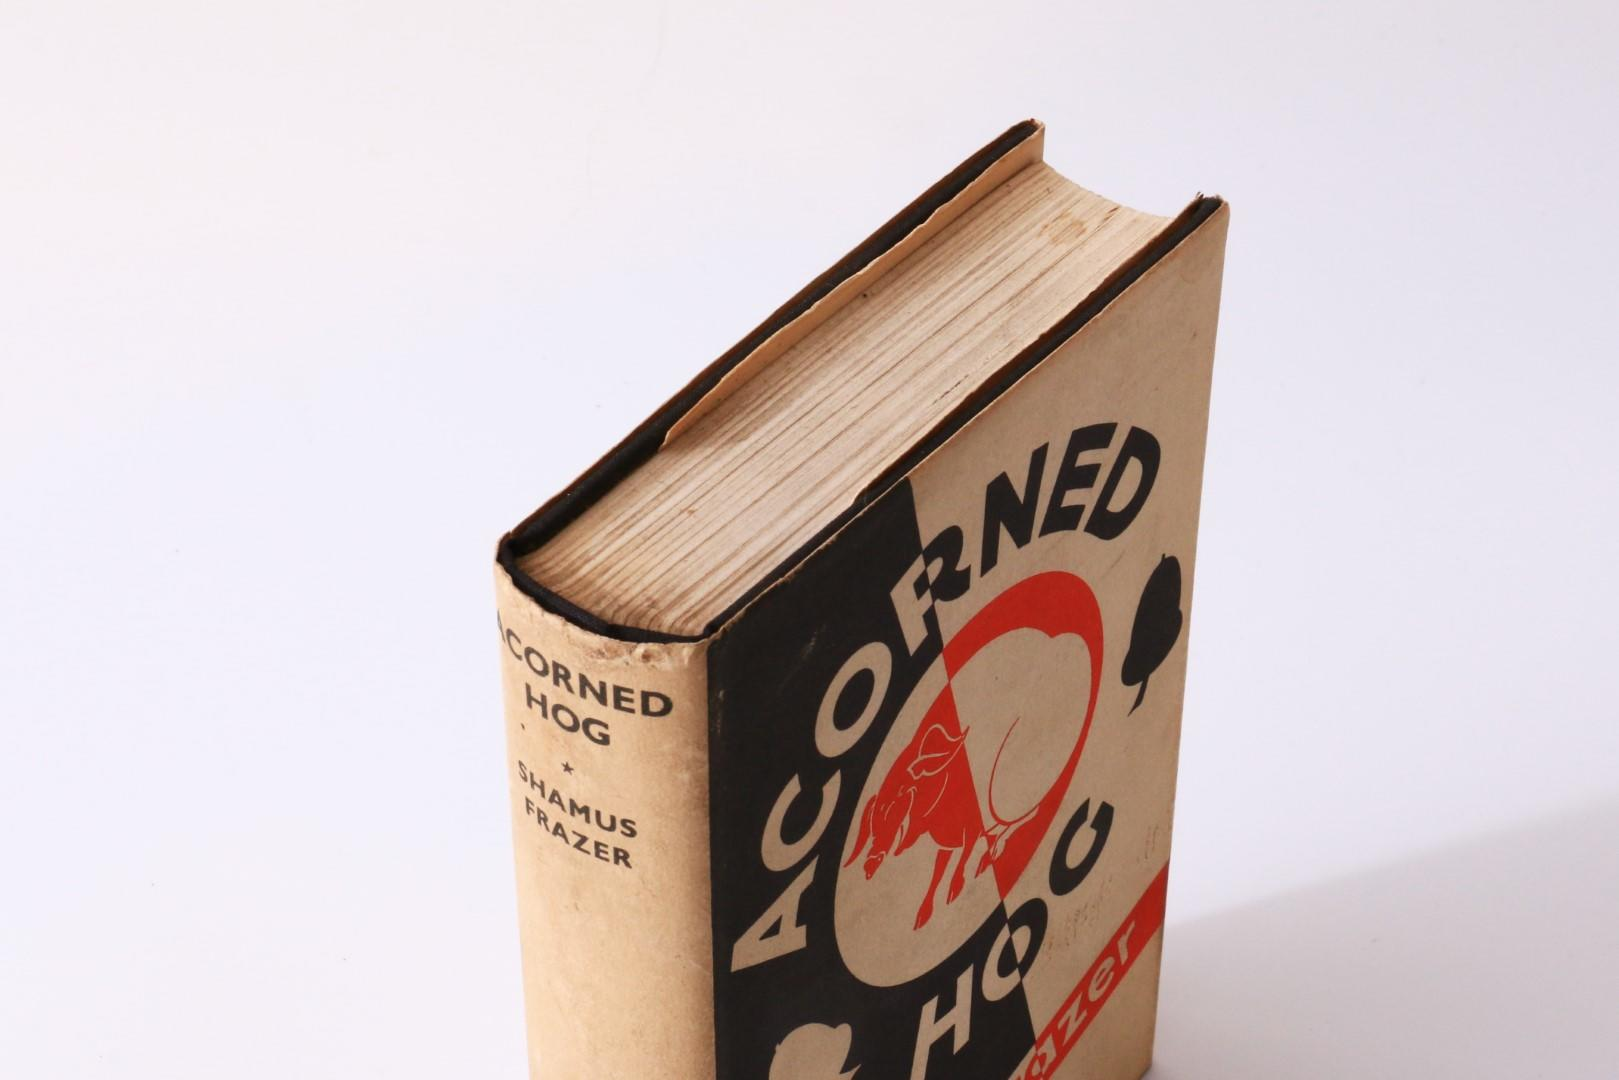 Shamus Frazer - Acorned Hog - Chapman & Hall, 1933, Signed First Edition.